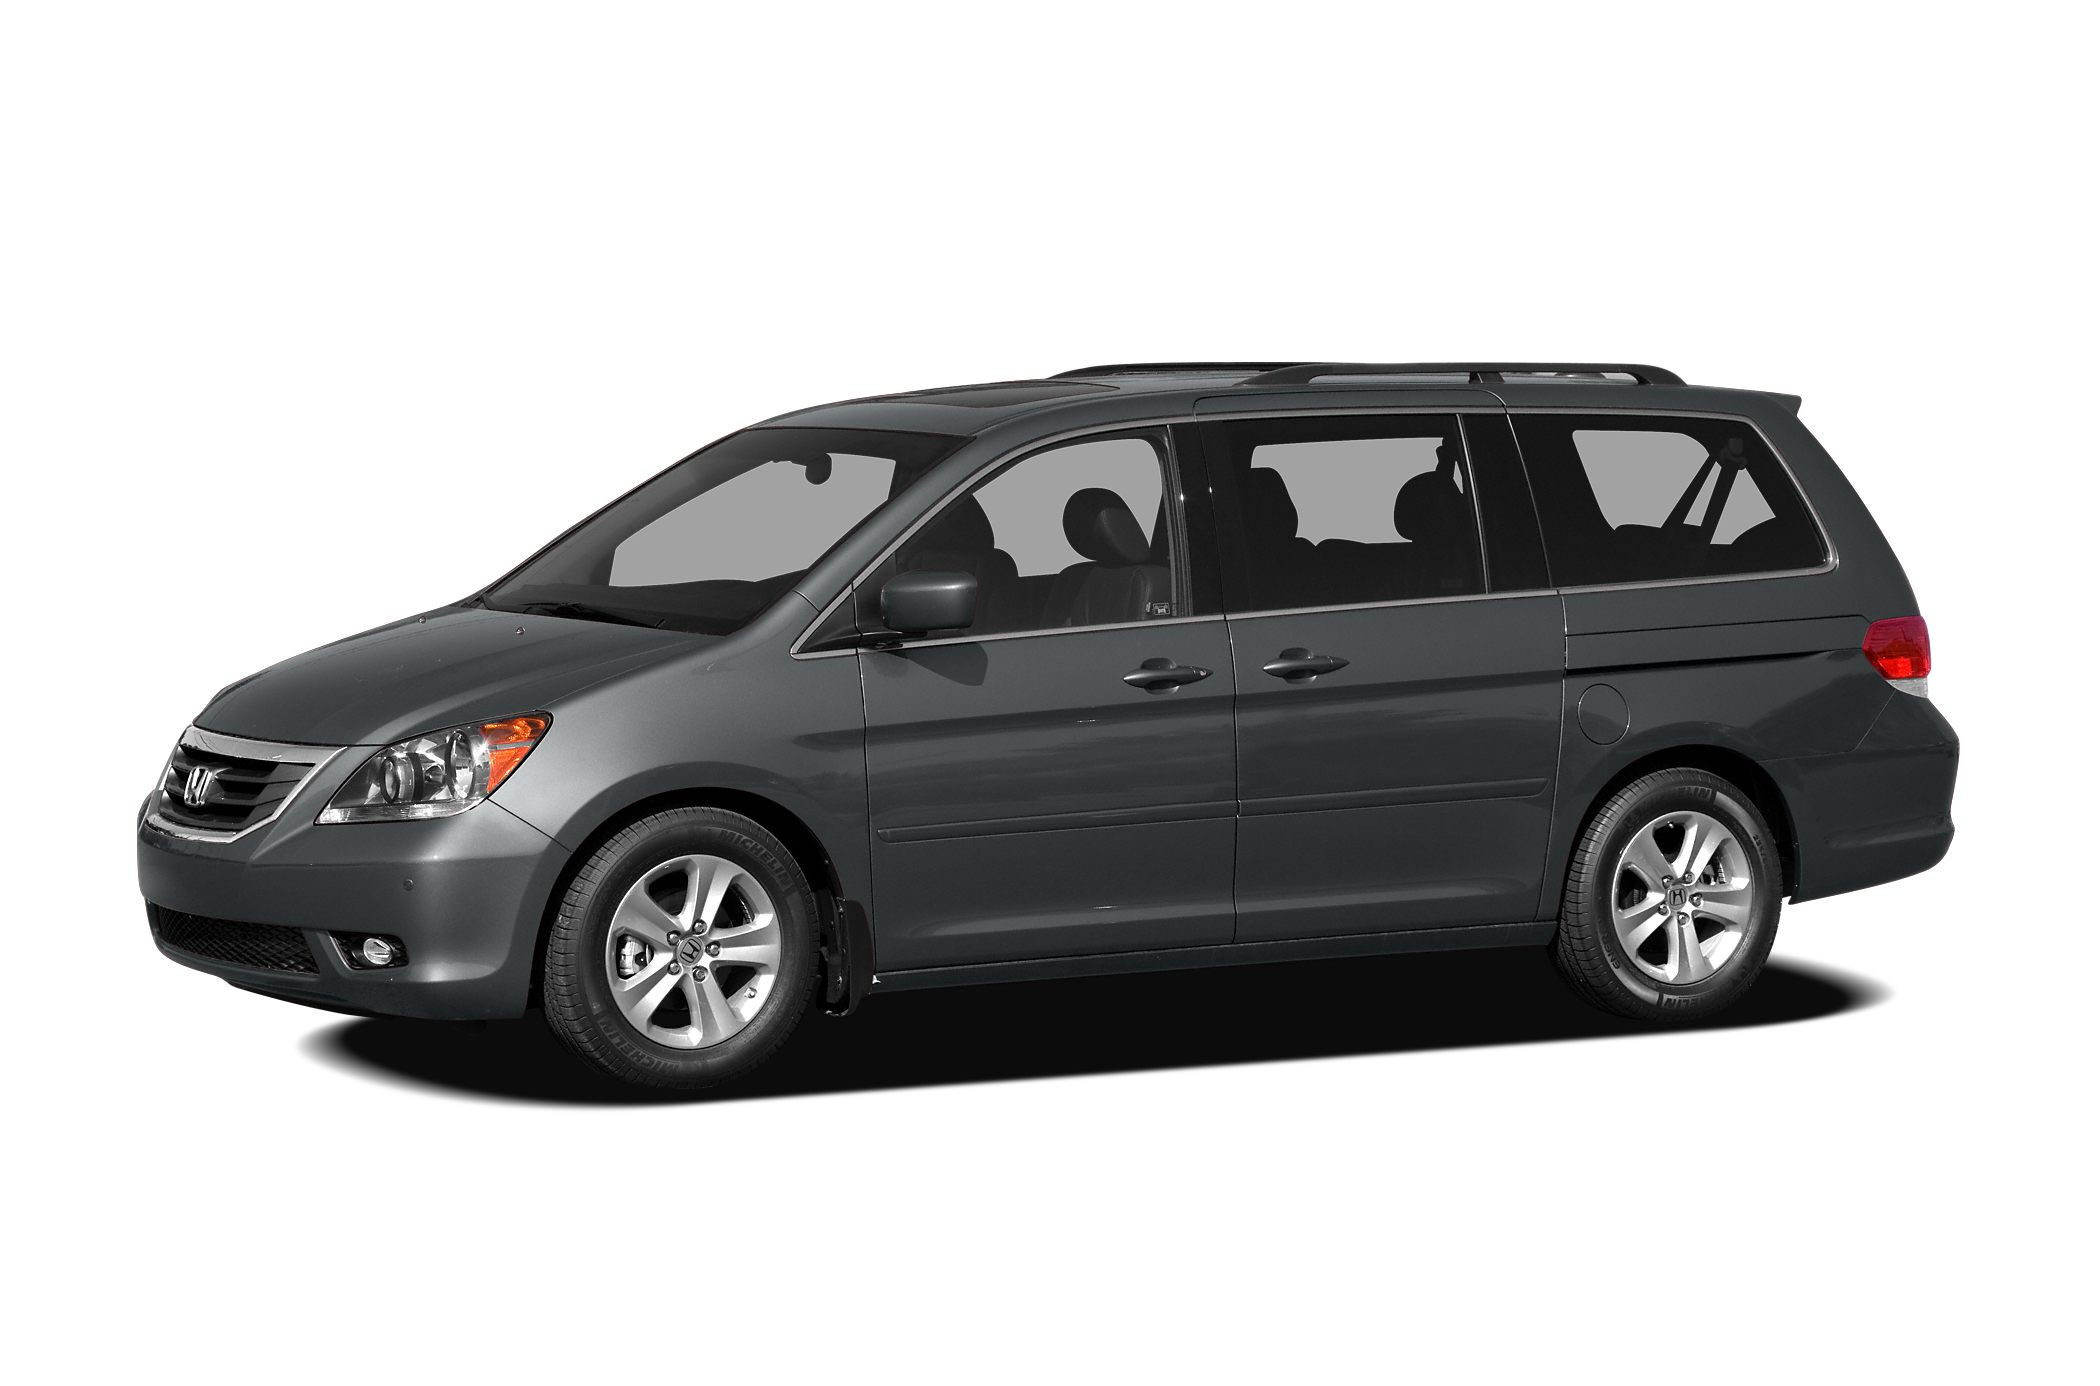 fd96bce04a 2010 Honda Odyssey Pictures